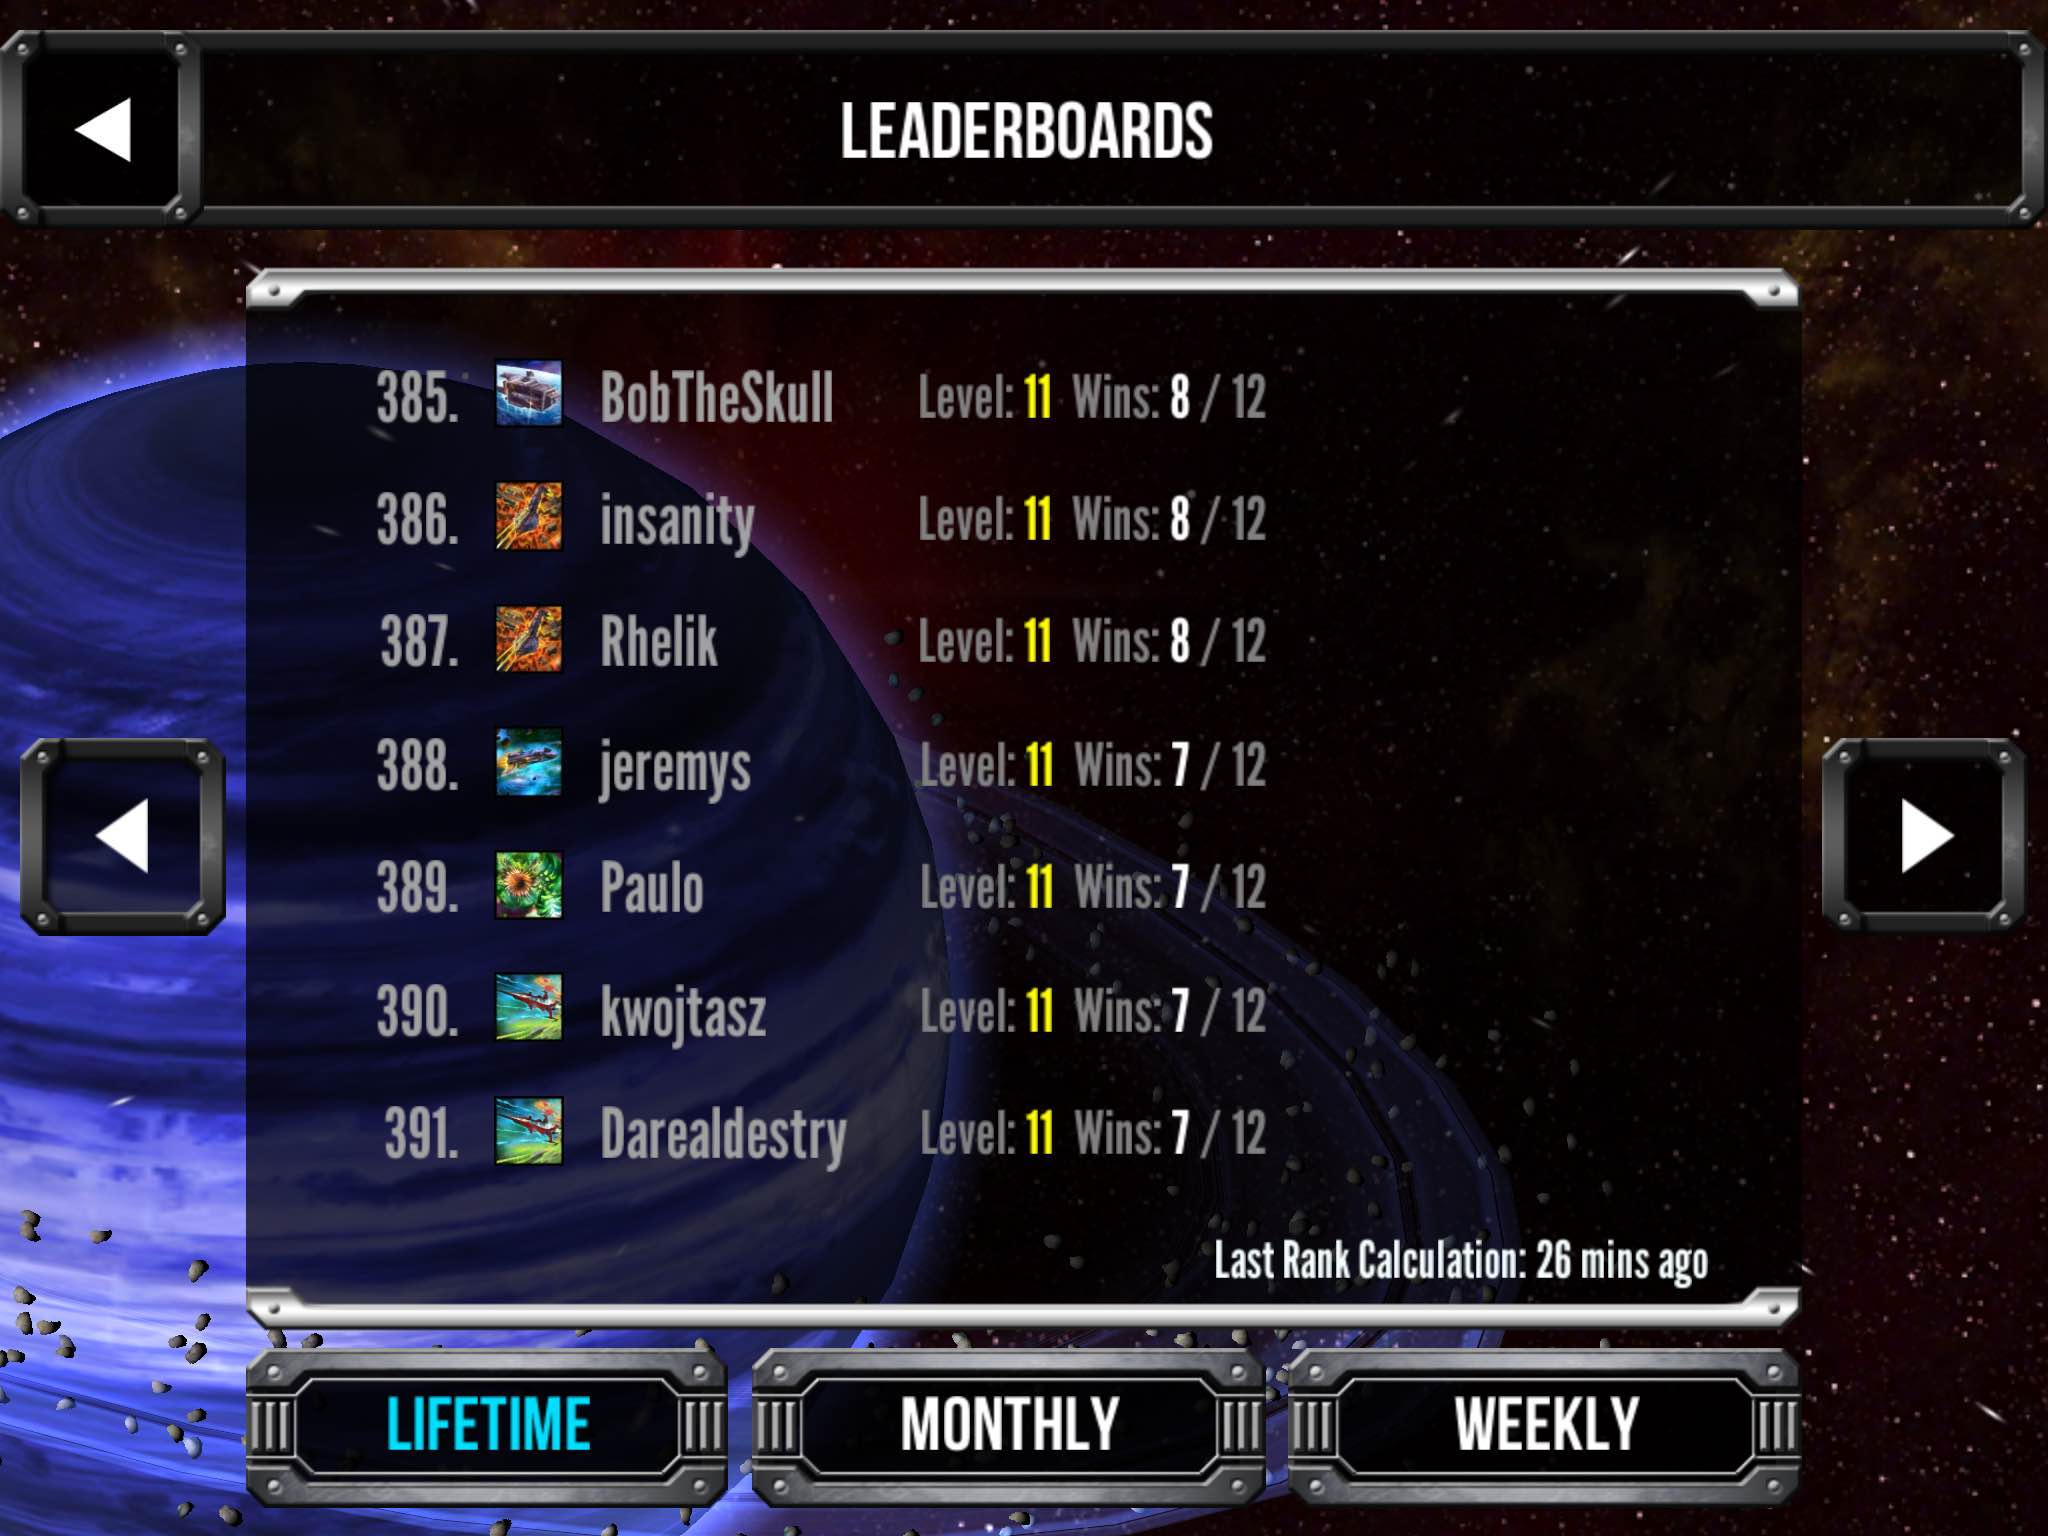 Star Realms Gambit Leaderboards